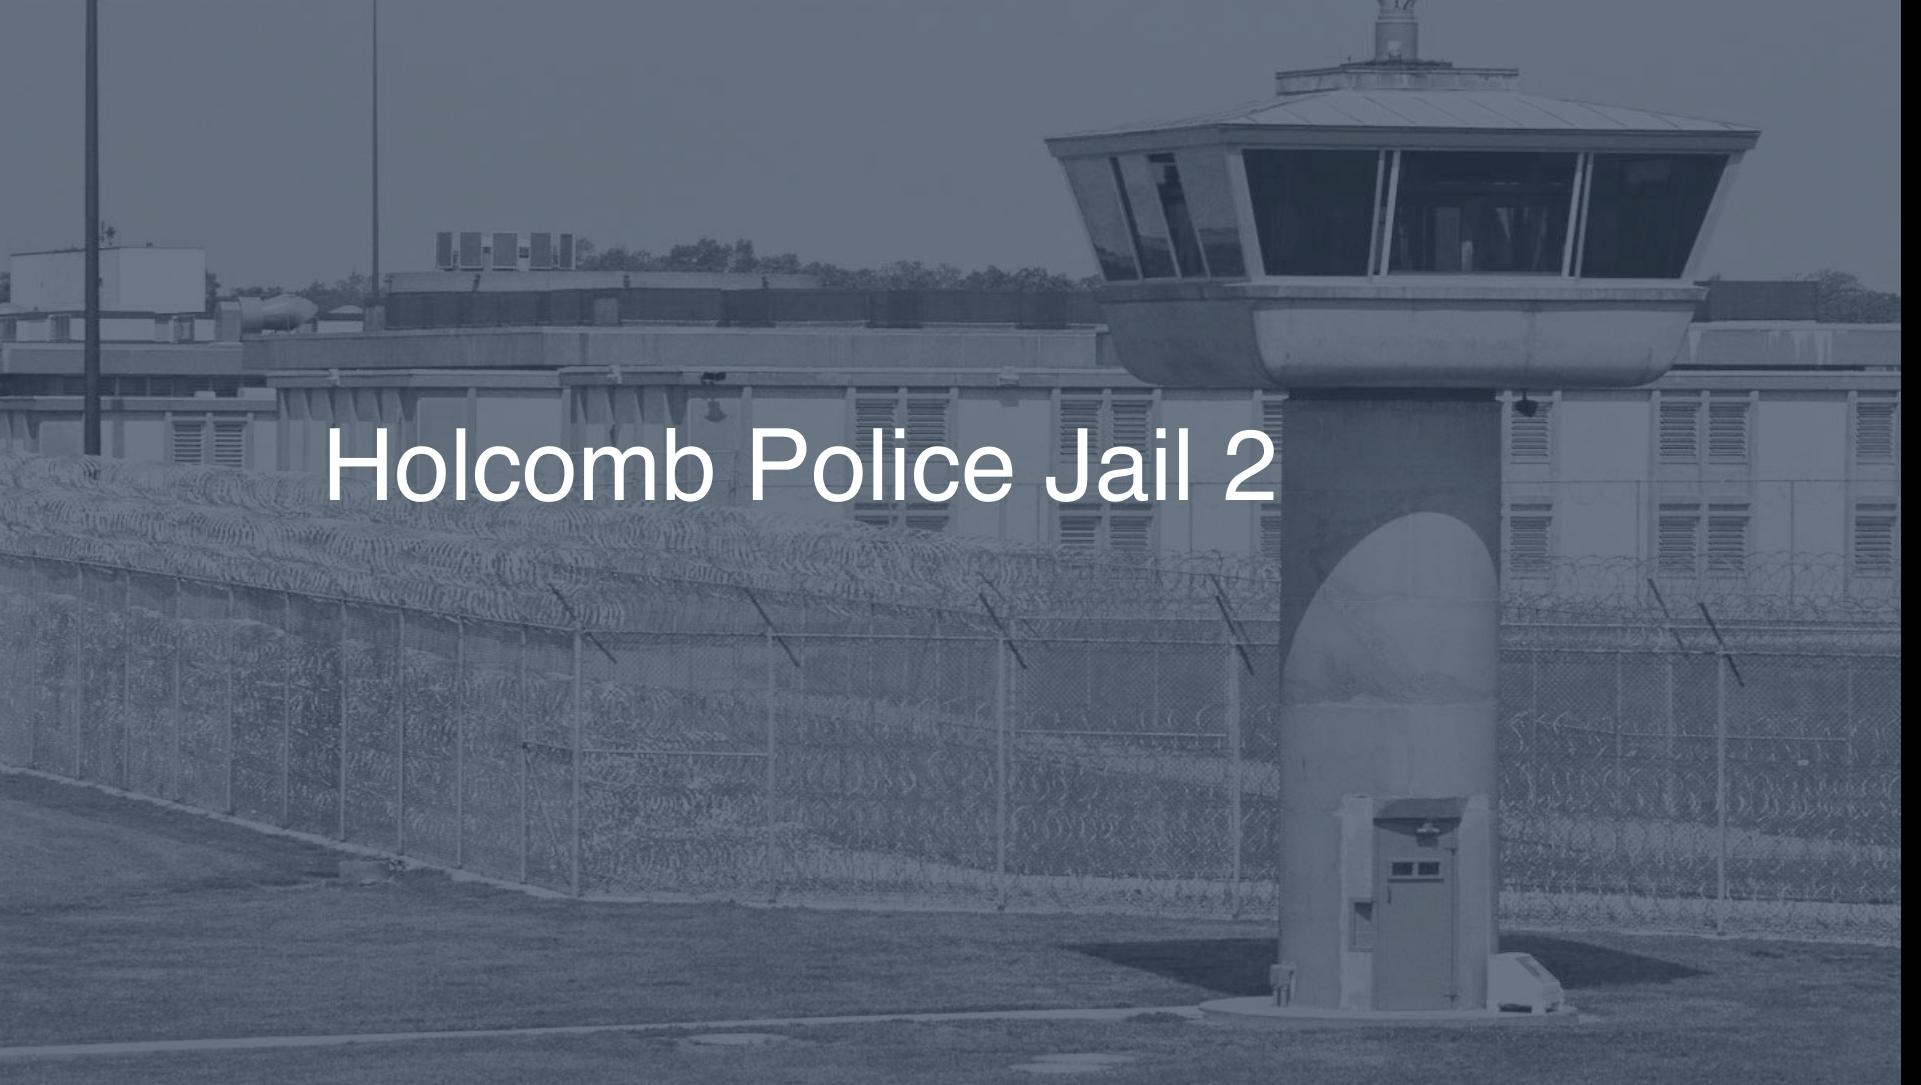 Holcomb Police Jail correctional facility picture